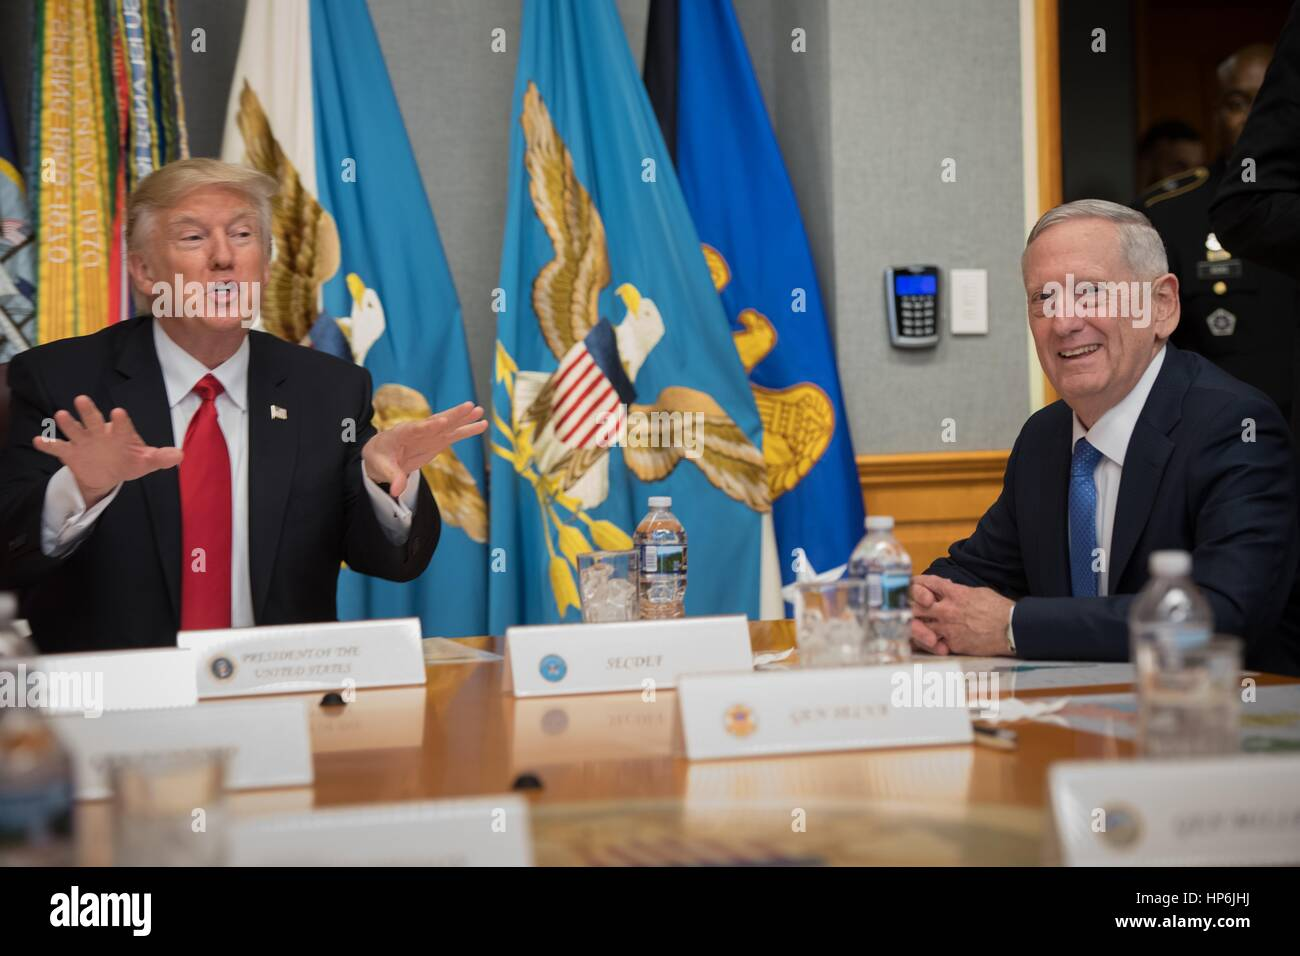 U.S. President Donald Trump and Secretary of Defense James Mattis meet with senior military leaders at the Pentagon - Stock Image